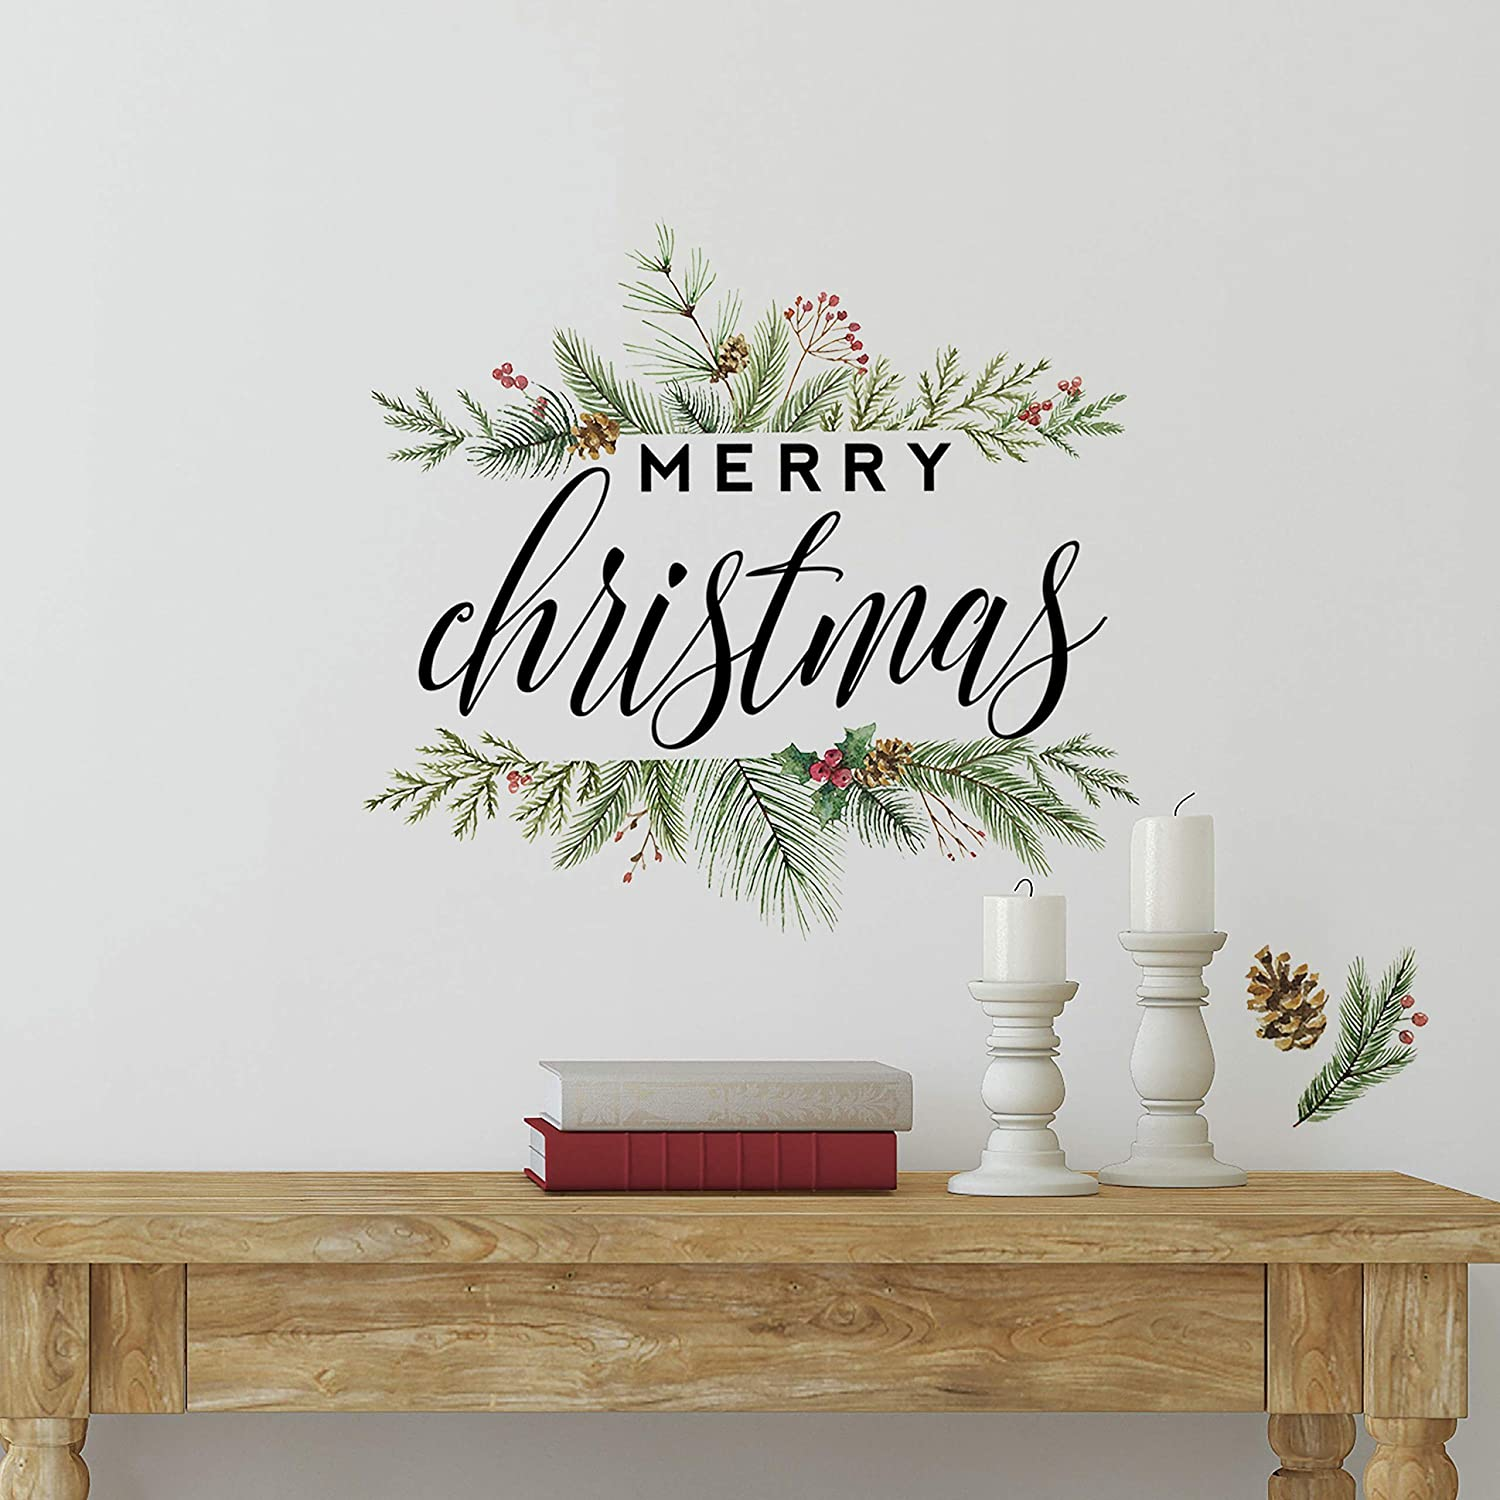 RoomMates Merry Christmas Wreath Peel And Stick Wall Decals, Reusable Christmas Decorations